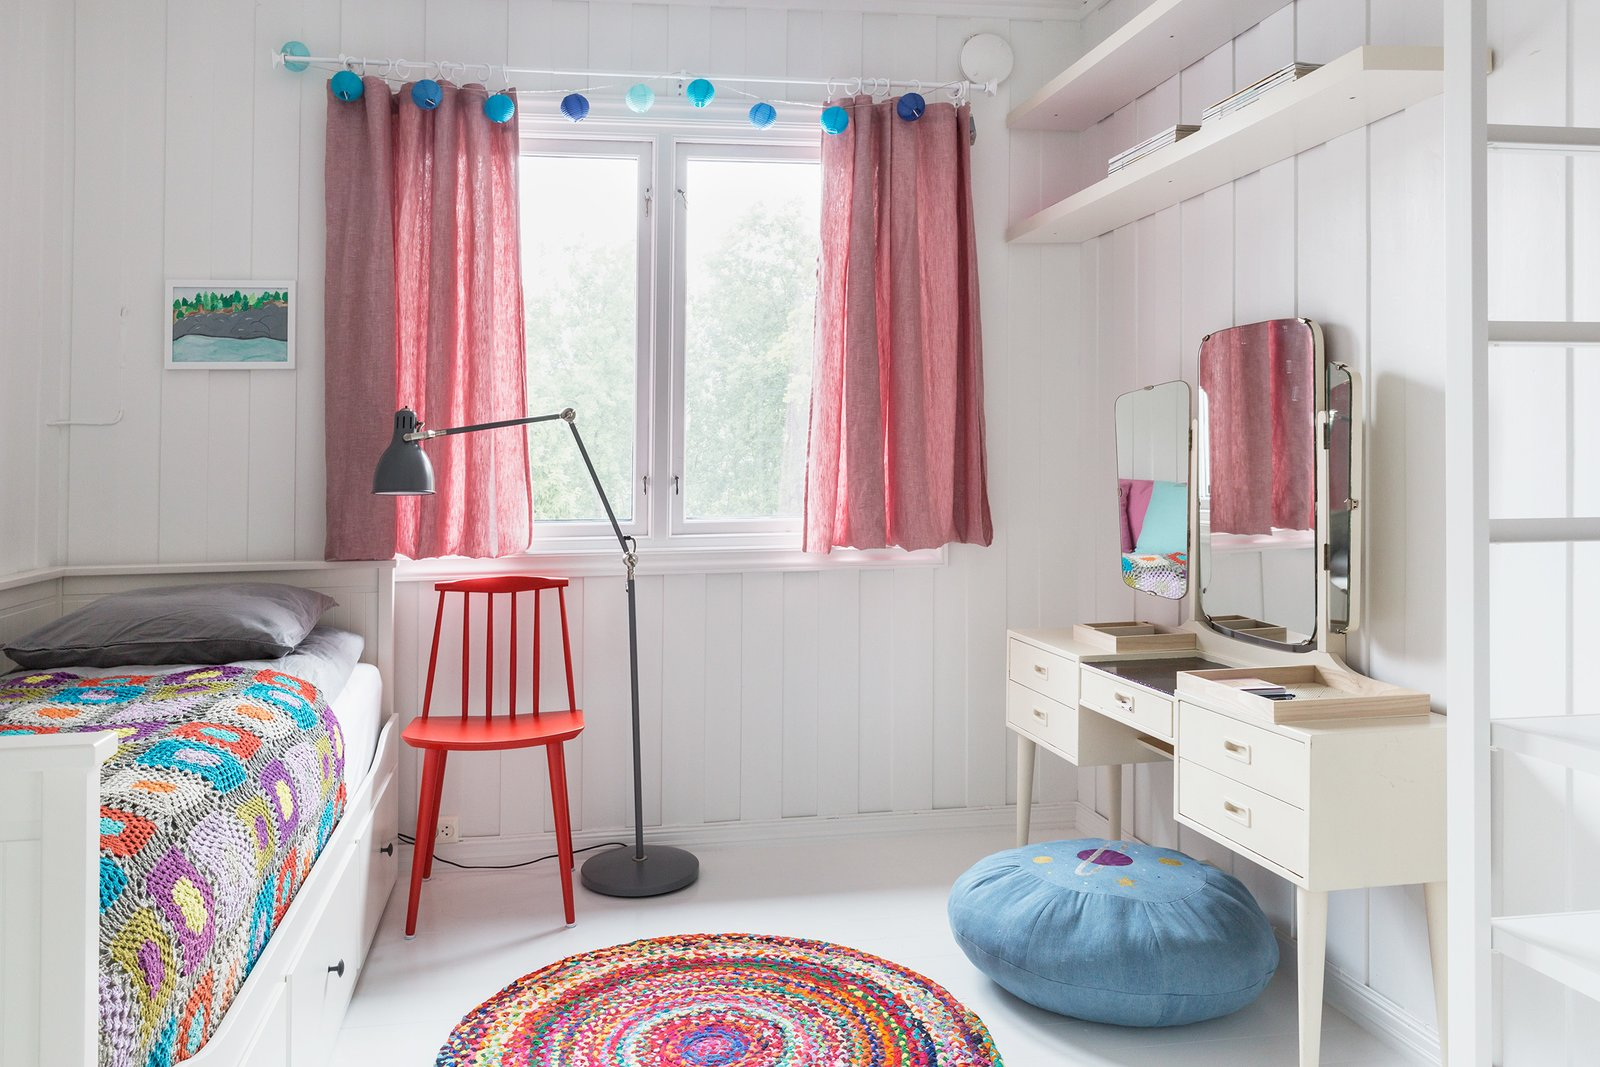 Colorful bed spreads and rugs make this a cool bedroom for kids.